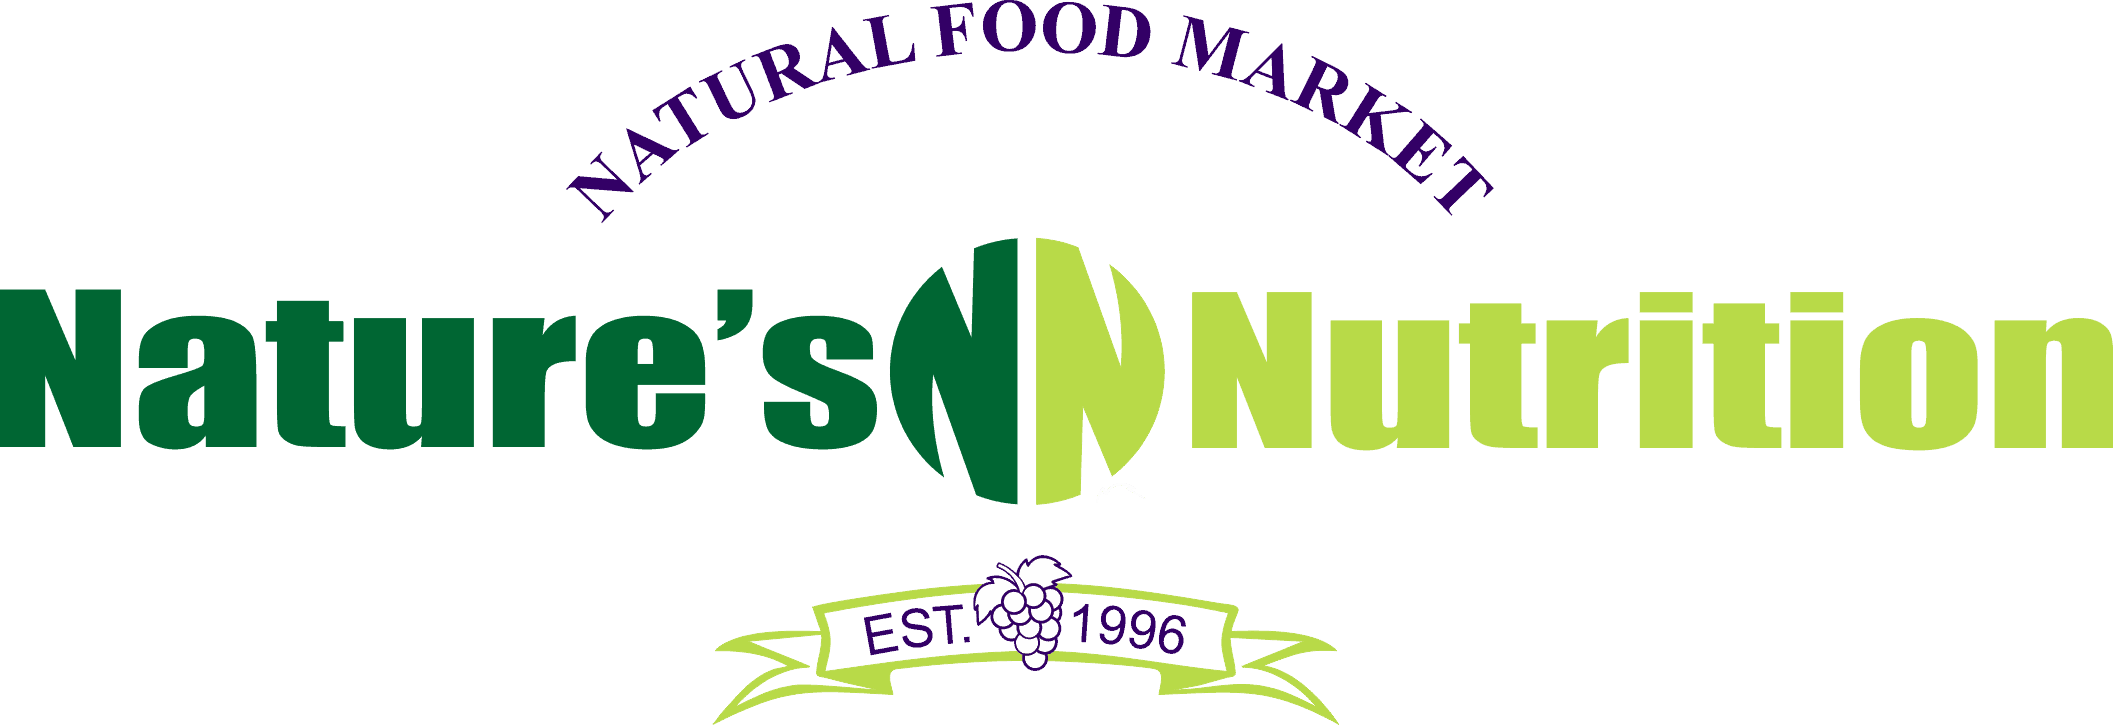 Natures_Nutrition__FINAL_Logo_PNG